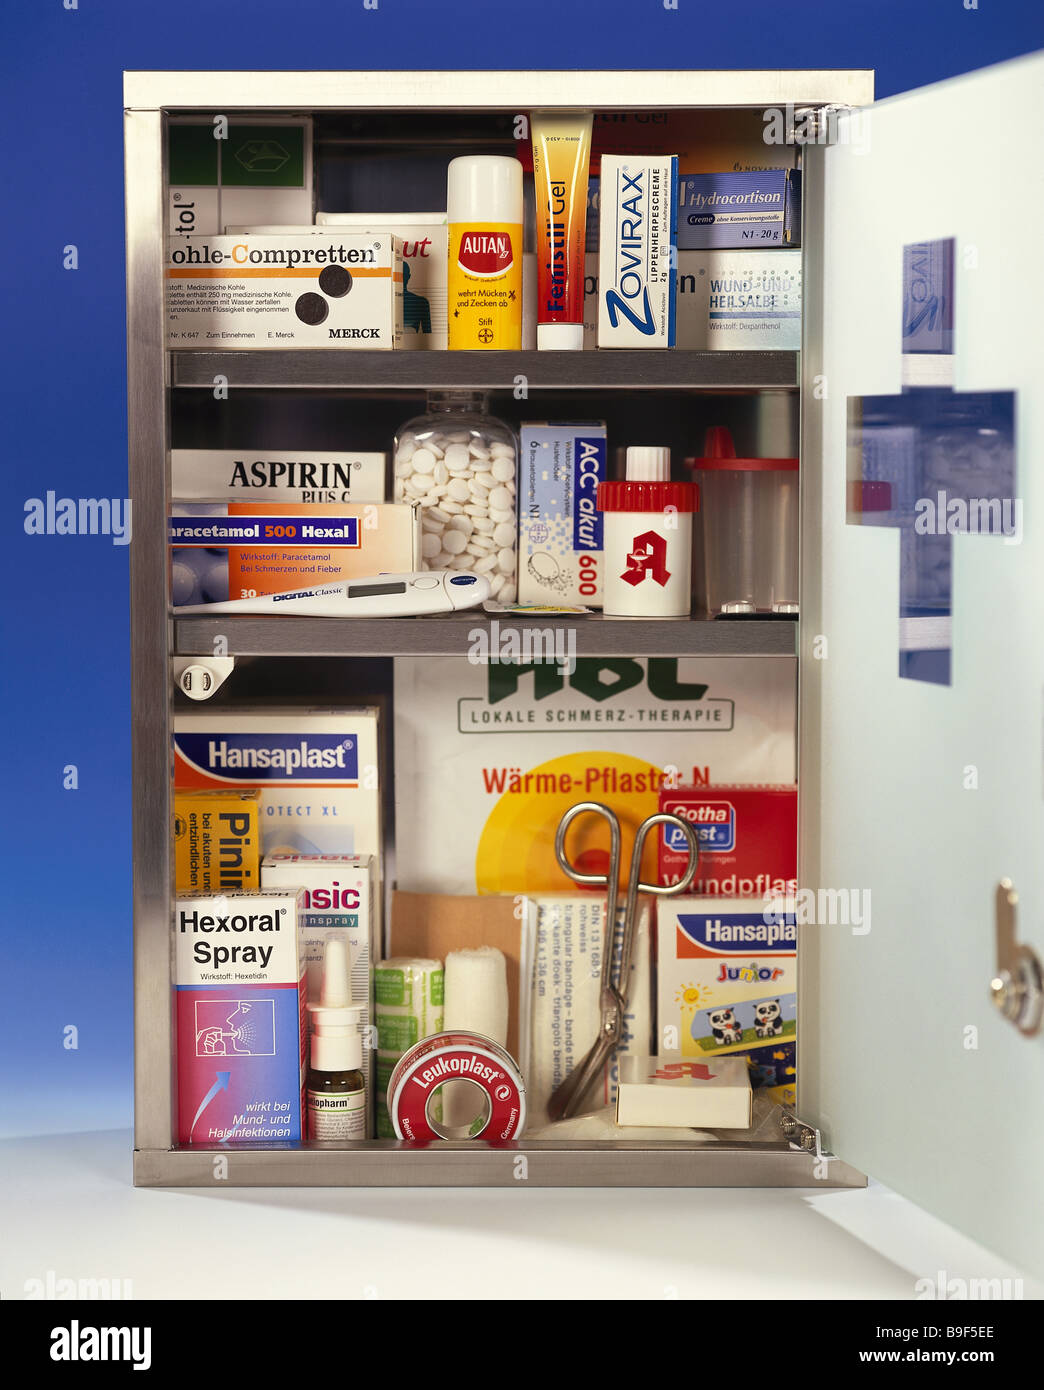 Medicine Closet Opened Medication No Property Release Restricting Little  Little Closet House Pharmacy First